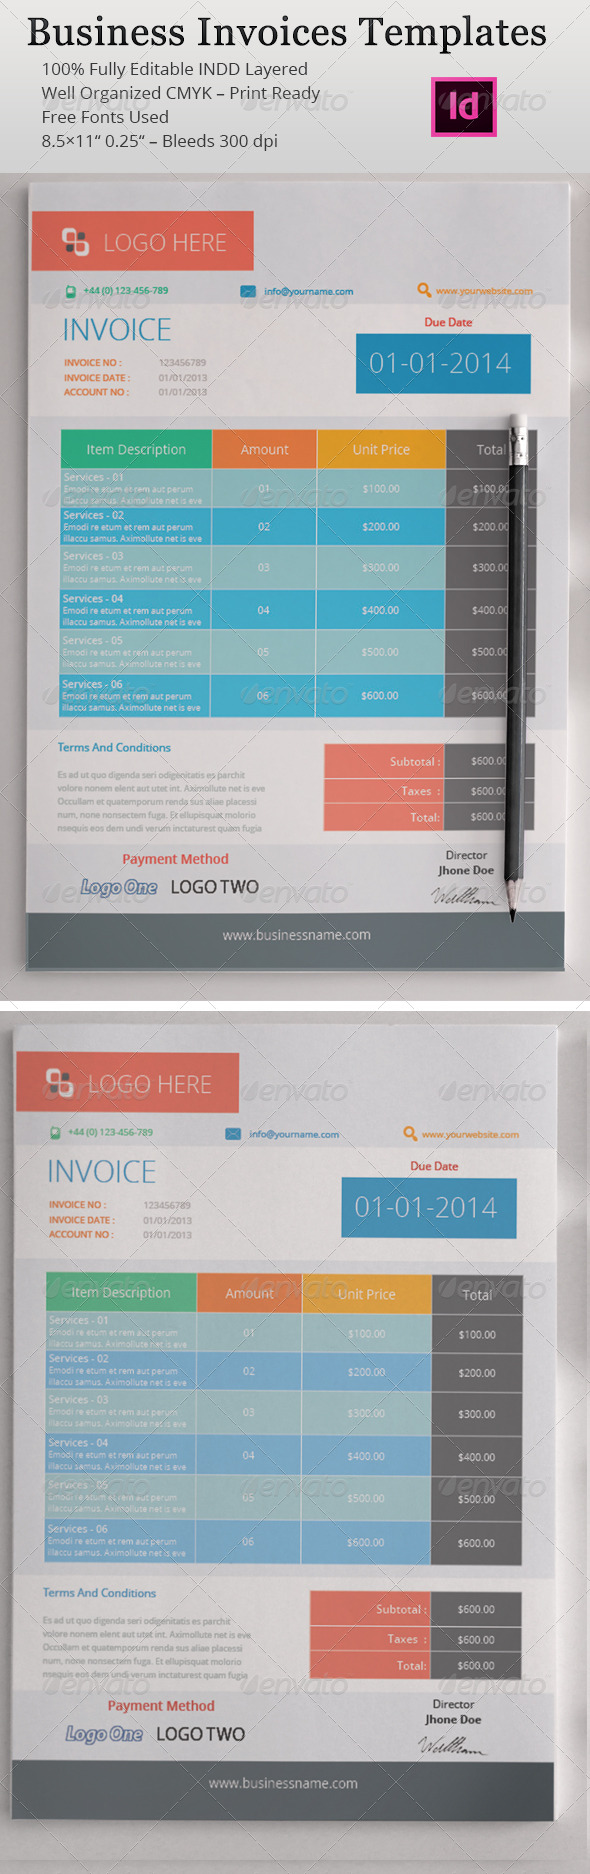 Business Invoices Templates by azadcsstune | GraphicRiver